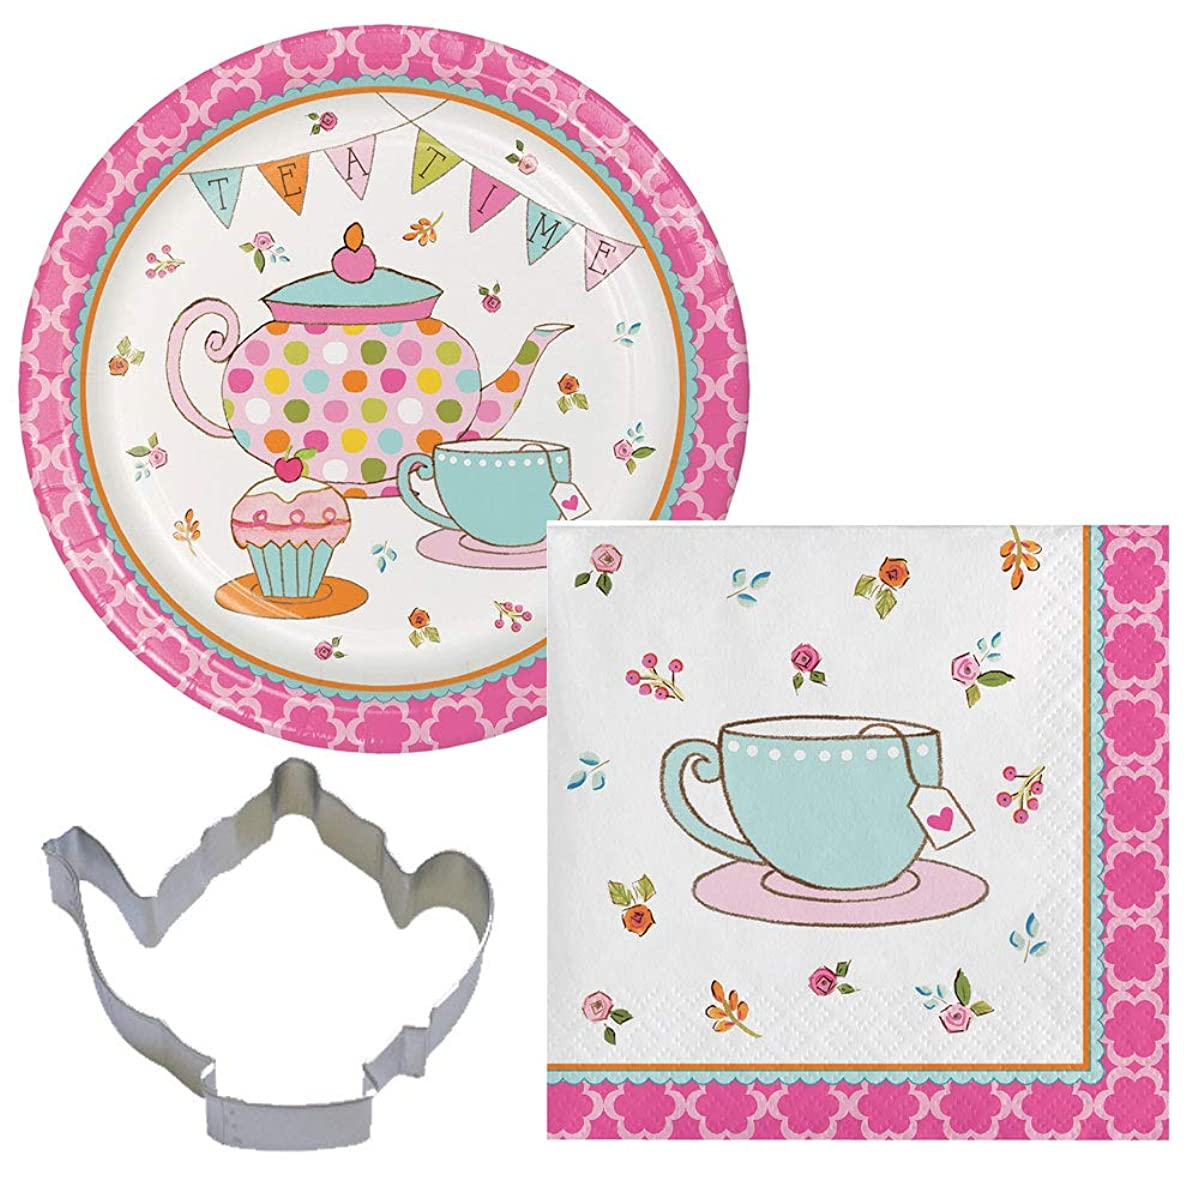 Tea Time Party Supplies for 16 Guests: 16 Plates, 16 Napkins & Cookie Cutter with Cookie Recipe Bundle